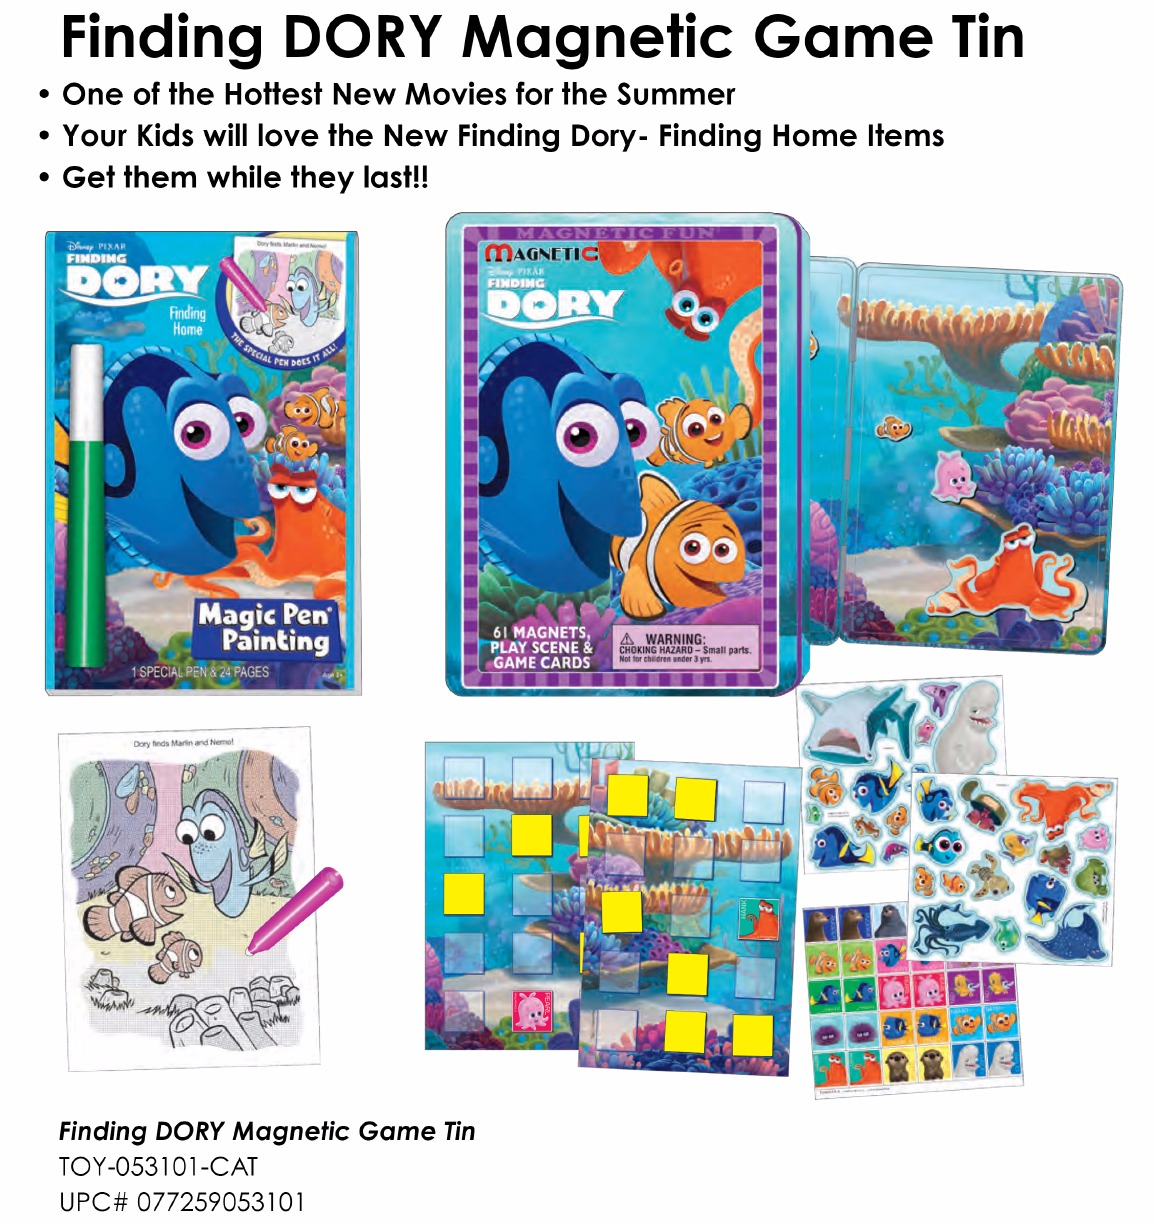 SNI Today - Finding DORY Magnetic Game Tin_edited